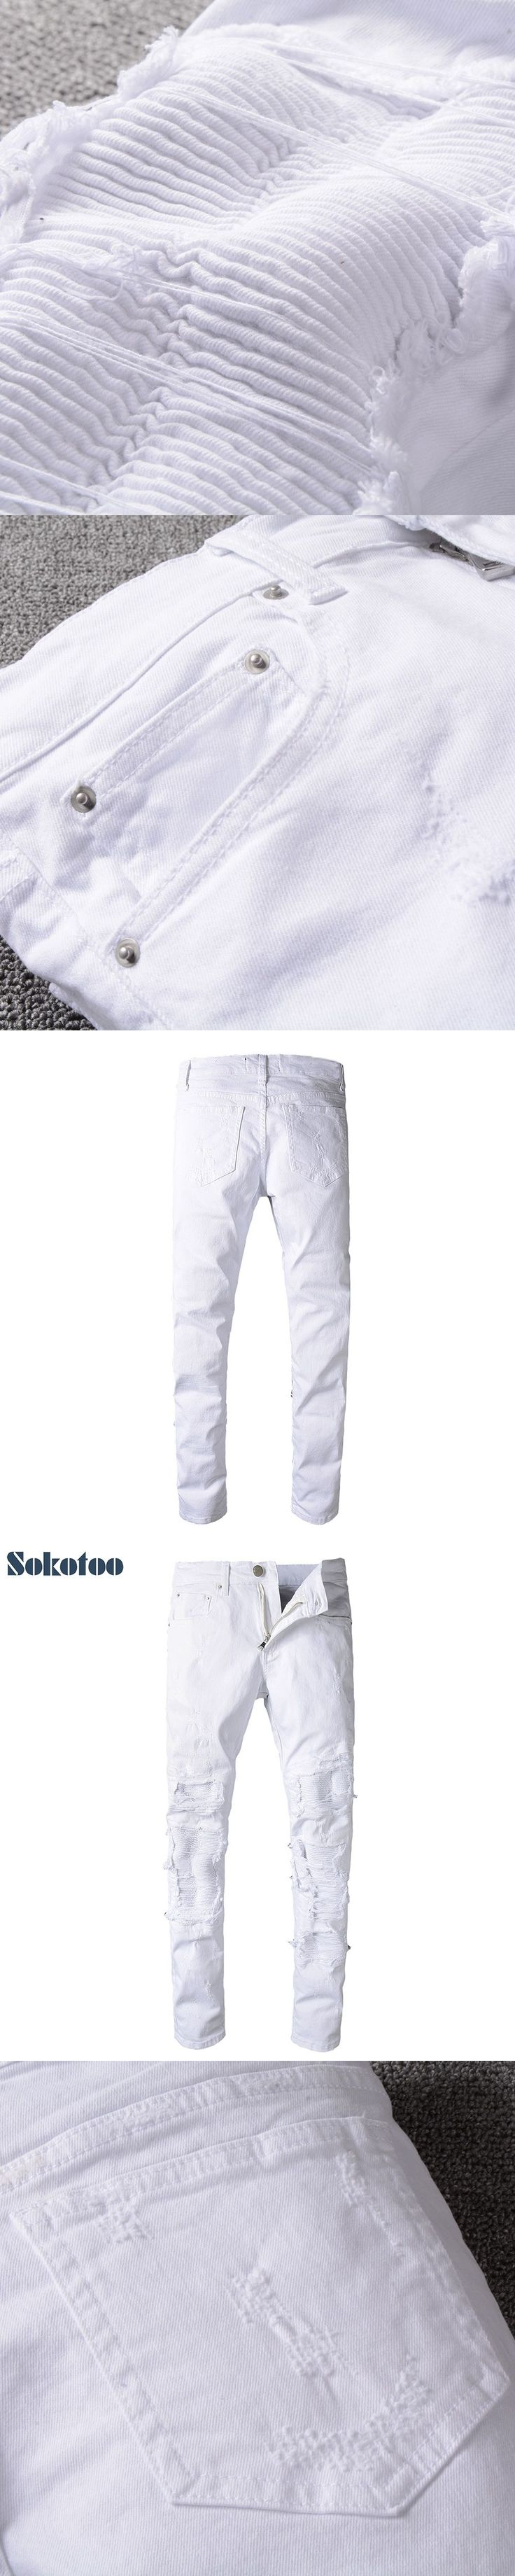 Sokotoo Men's white pleated ripped skinny biker jeans for moto Casual patchwork stretch denim pants Long trousers